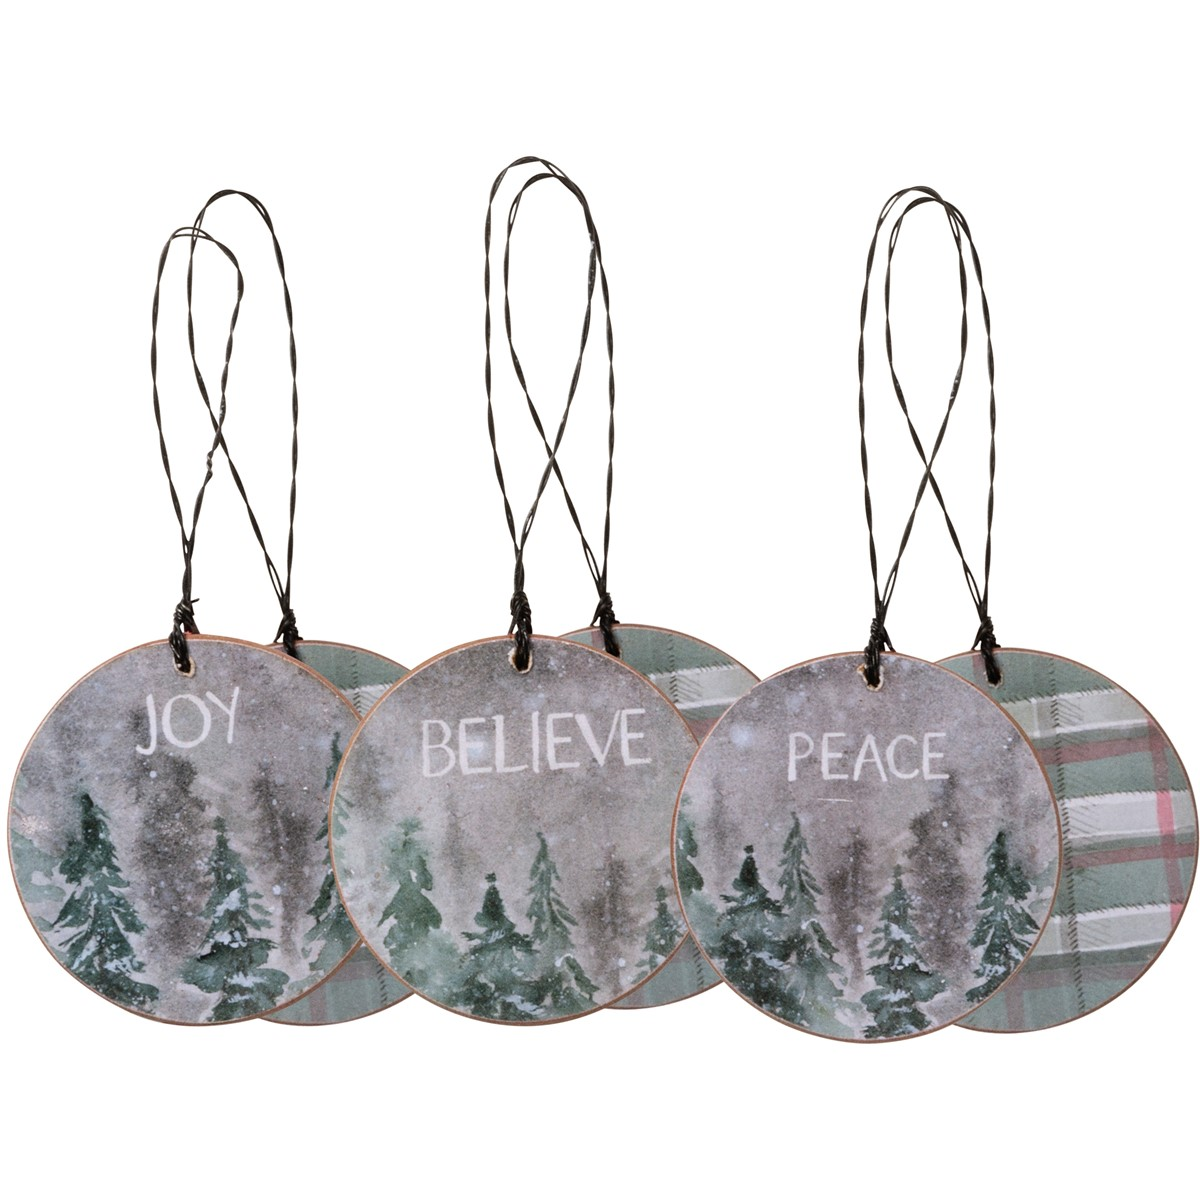 "Ornament Set - Joy Peace - 2.25"" x 2.25"" - Wood, Paper, Wire"